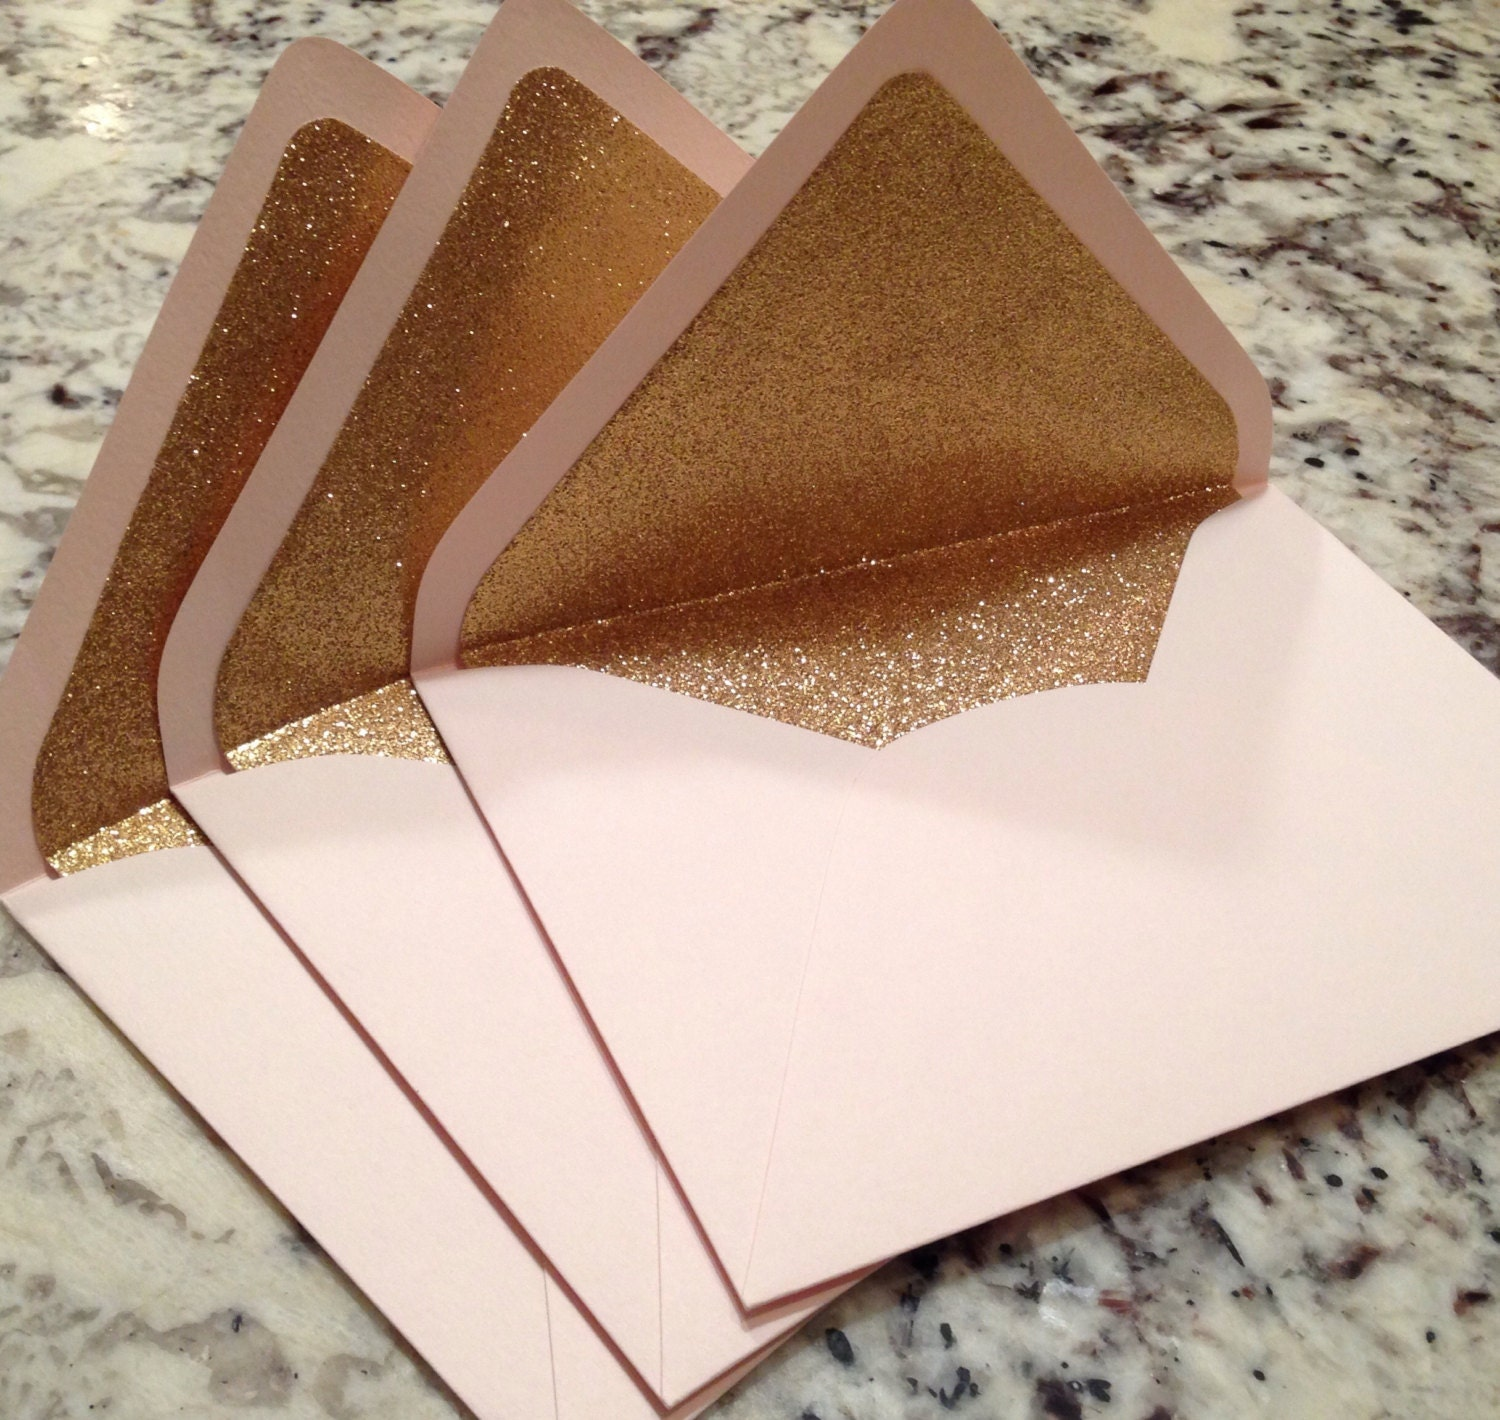 Luxe Blush A7 5x7 Gold Glitter Lined Envelopes Pale Pink